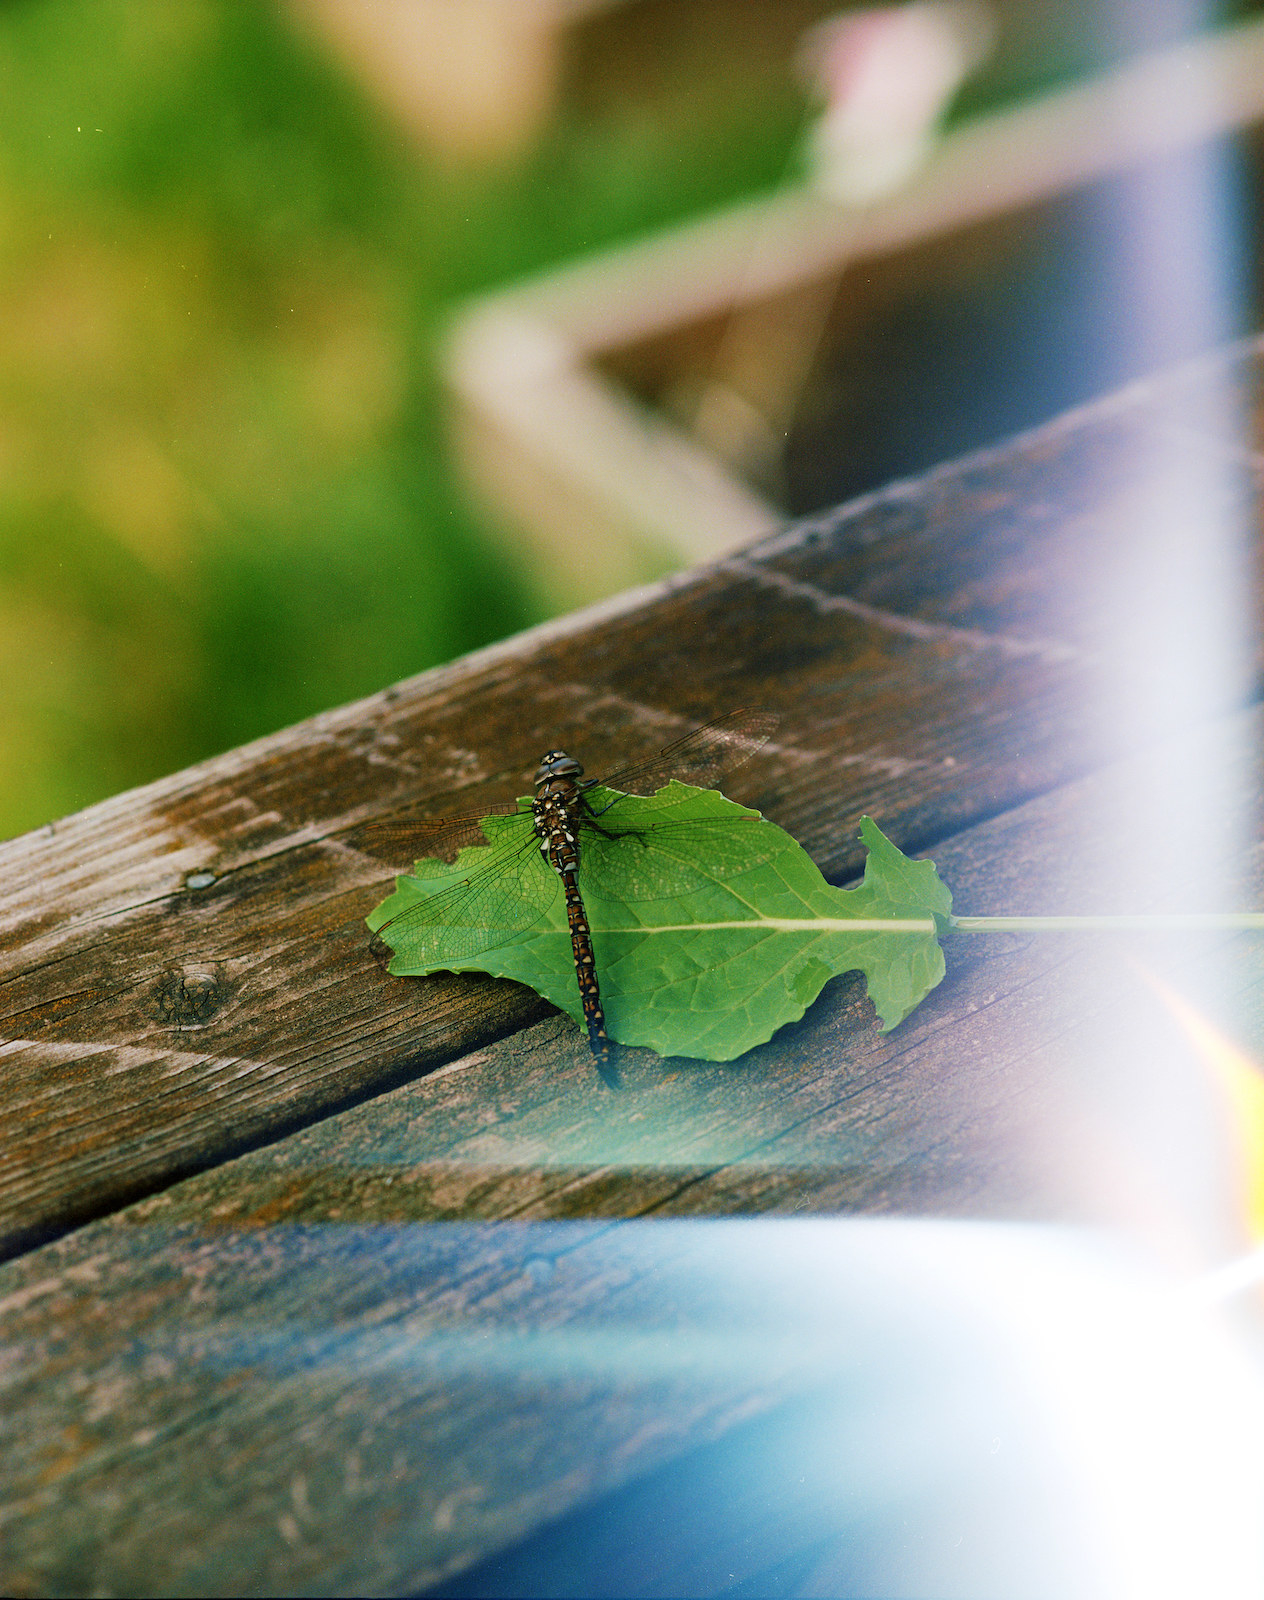 A dragonfly on a leaf on a harden bench, with a solar flare on the right